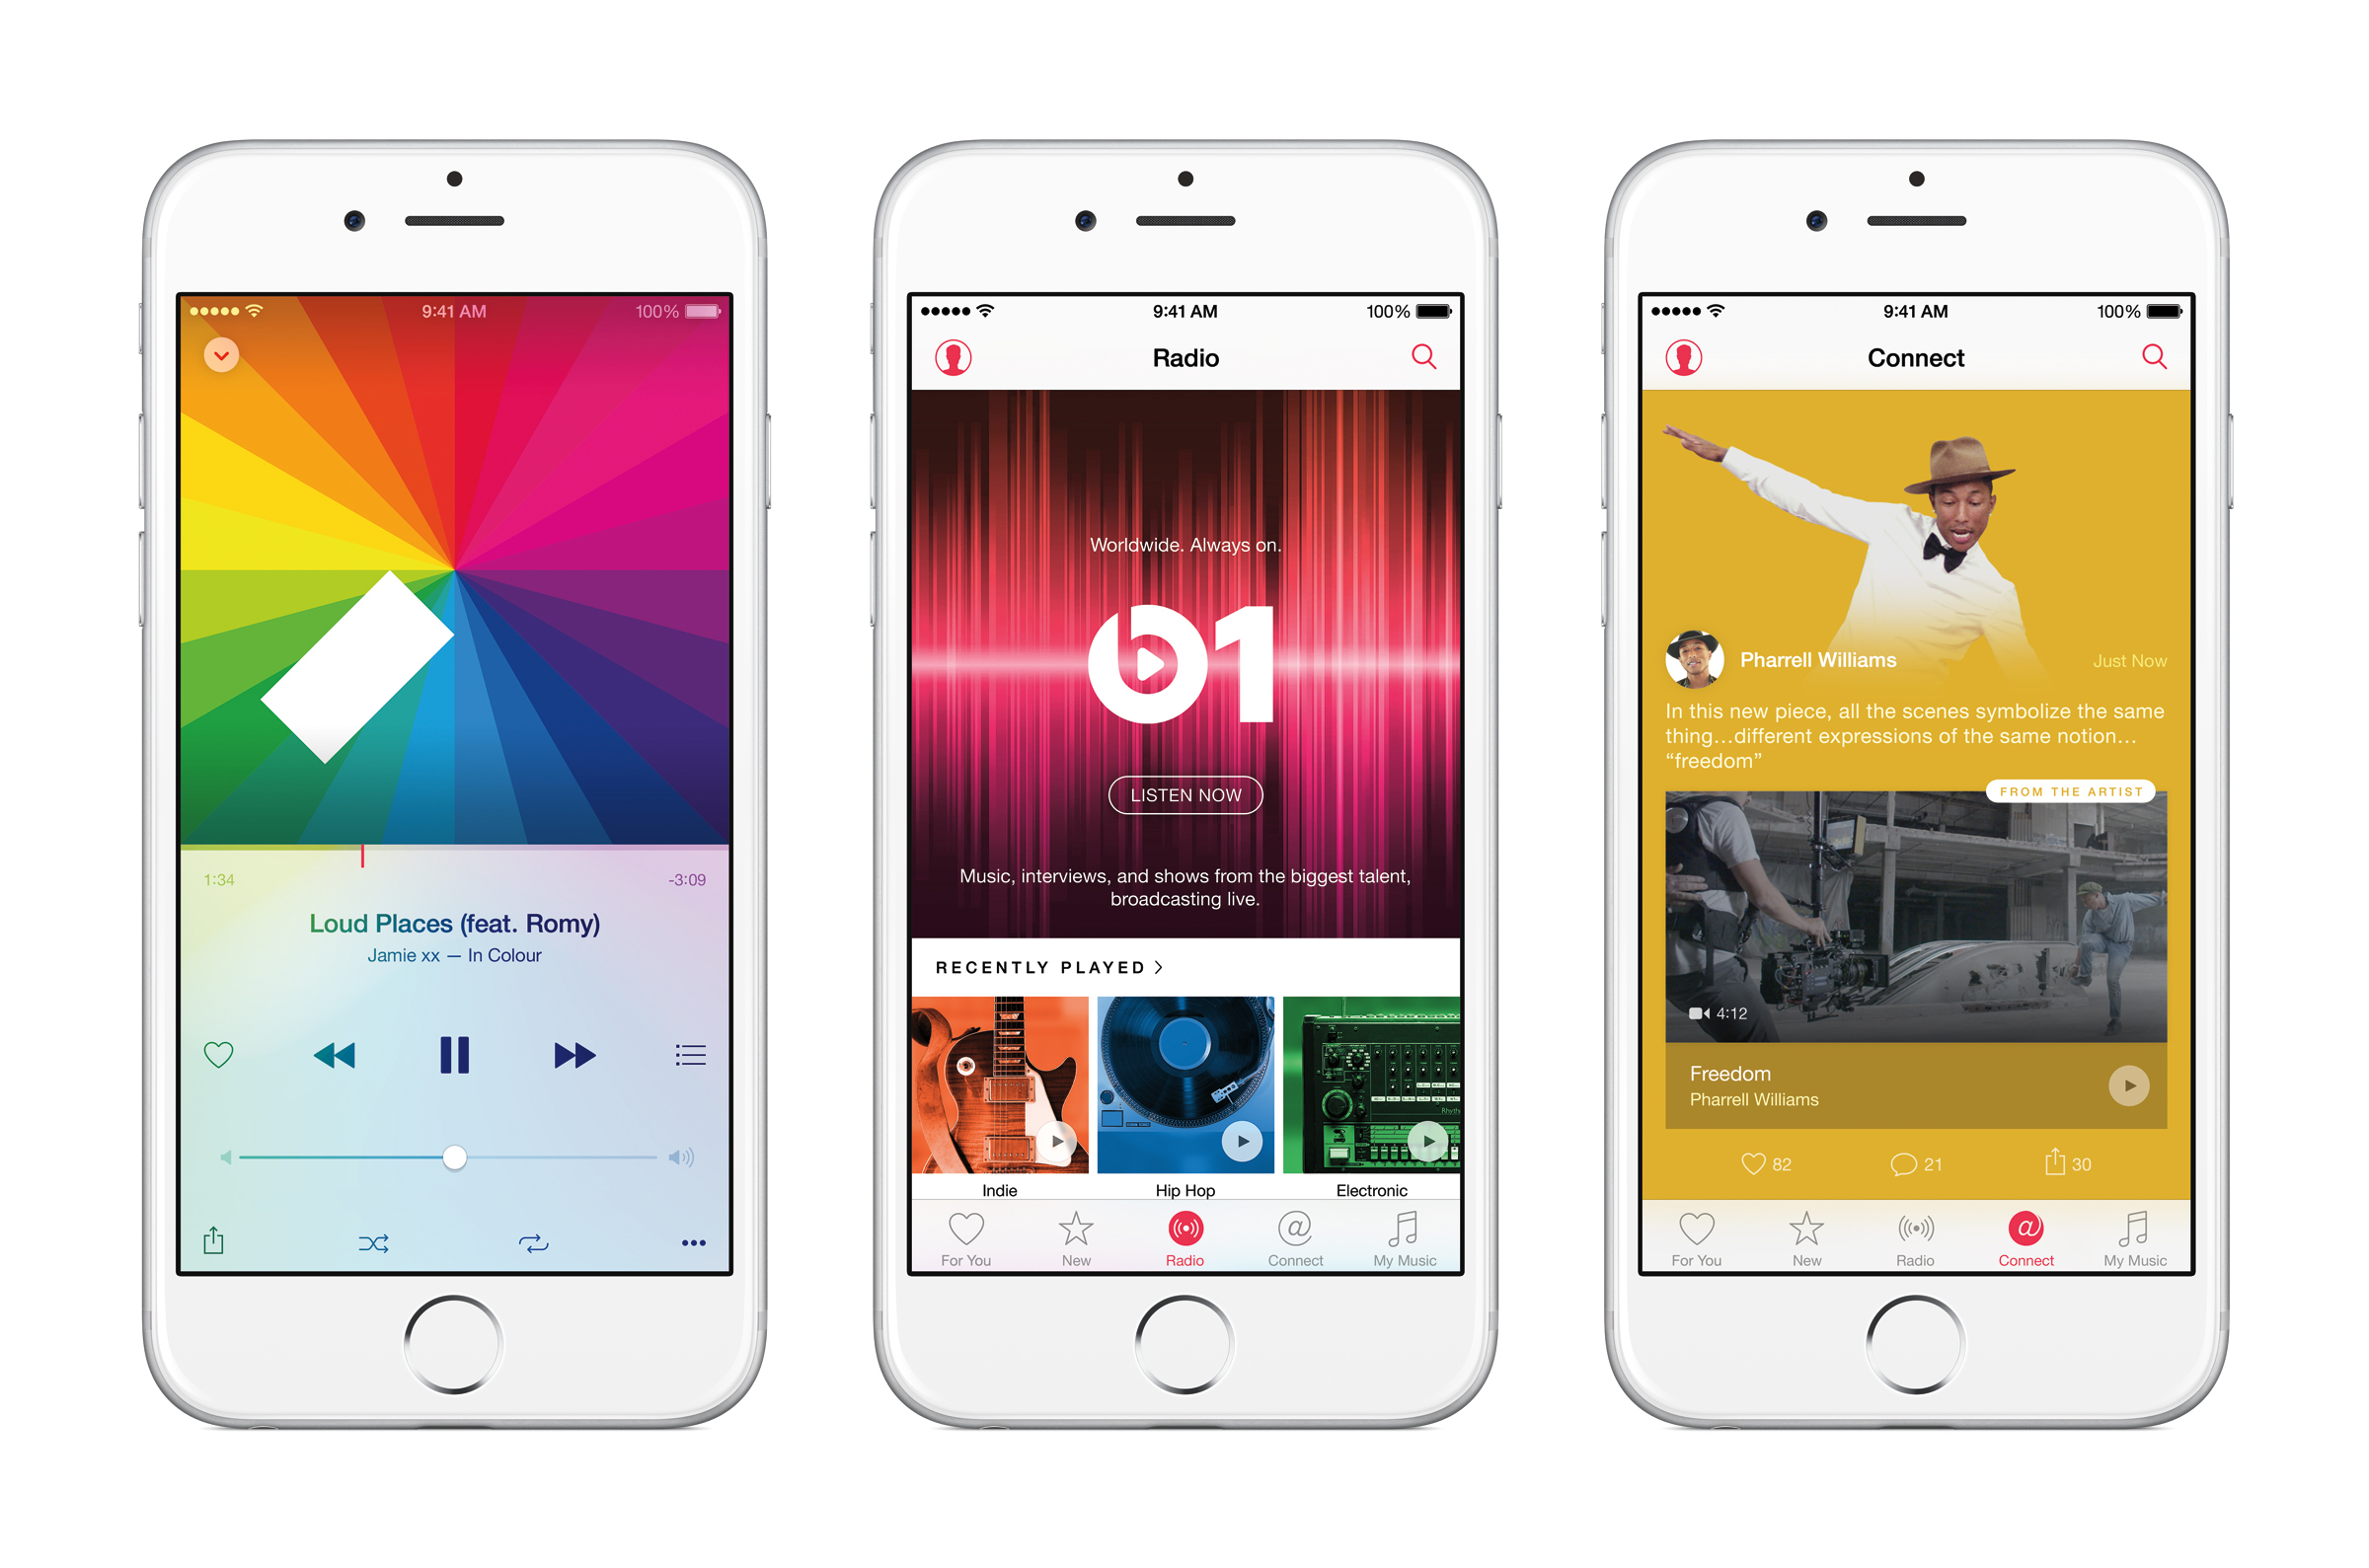 Music News: Music execs, managers and artists react to Apple Music news